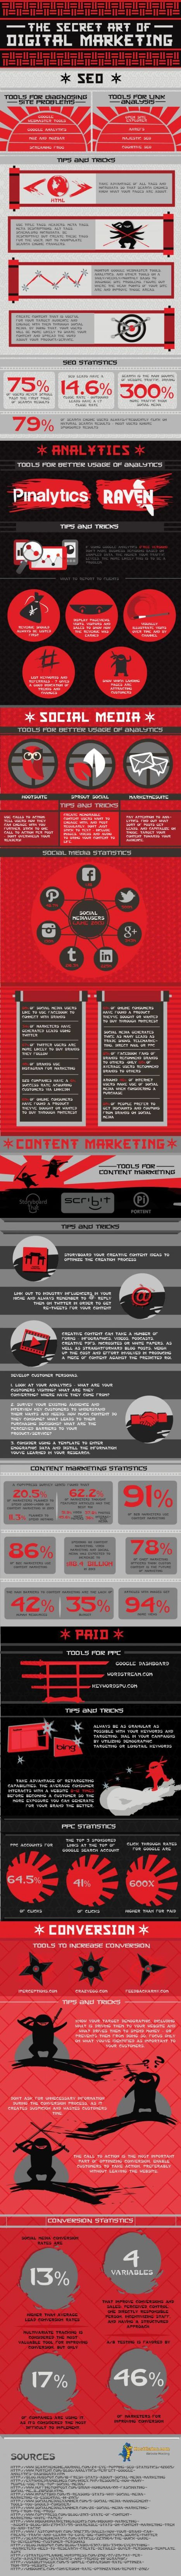 Secrets du digital marketing | Infographie SEO | Digital & Mobile Marketing Toolkit | Scoop.it